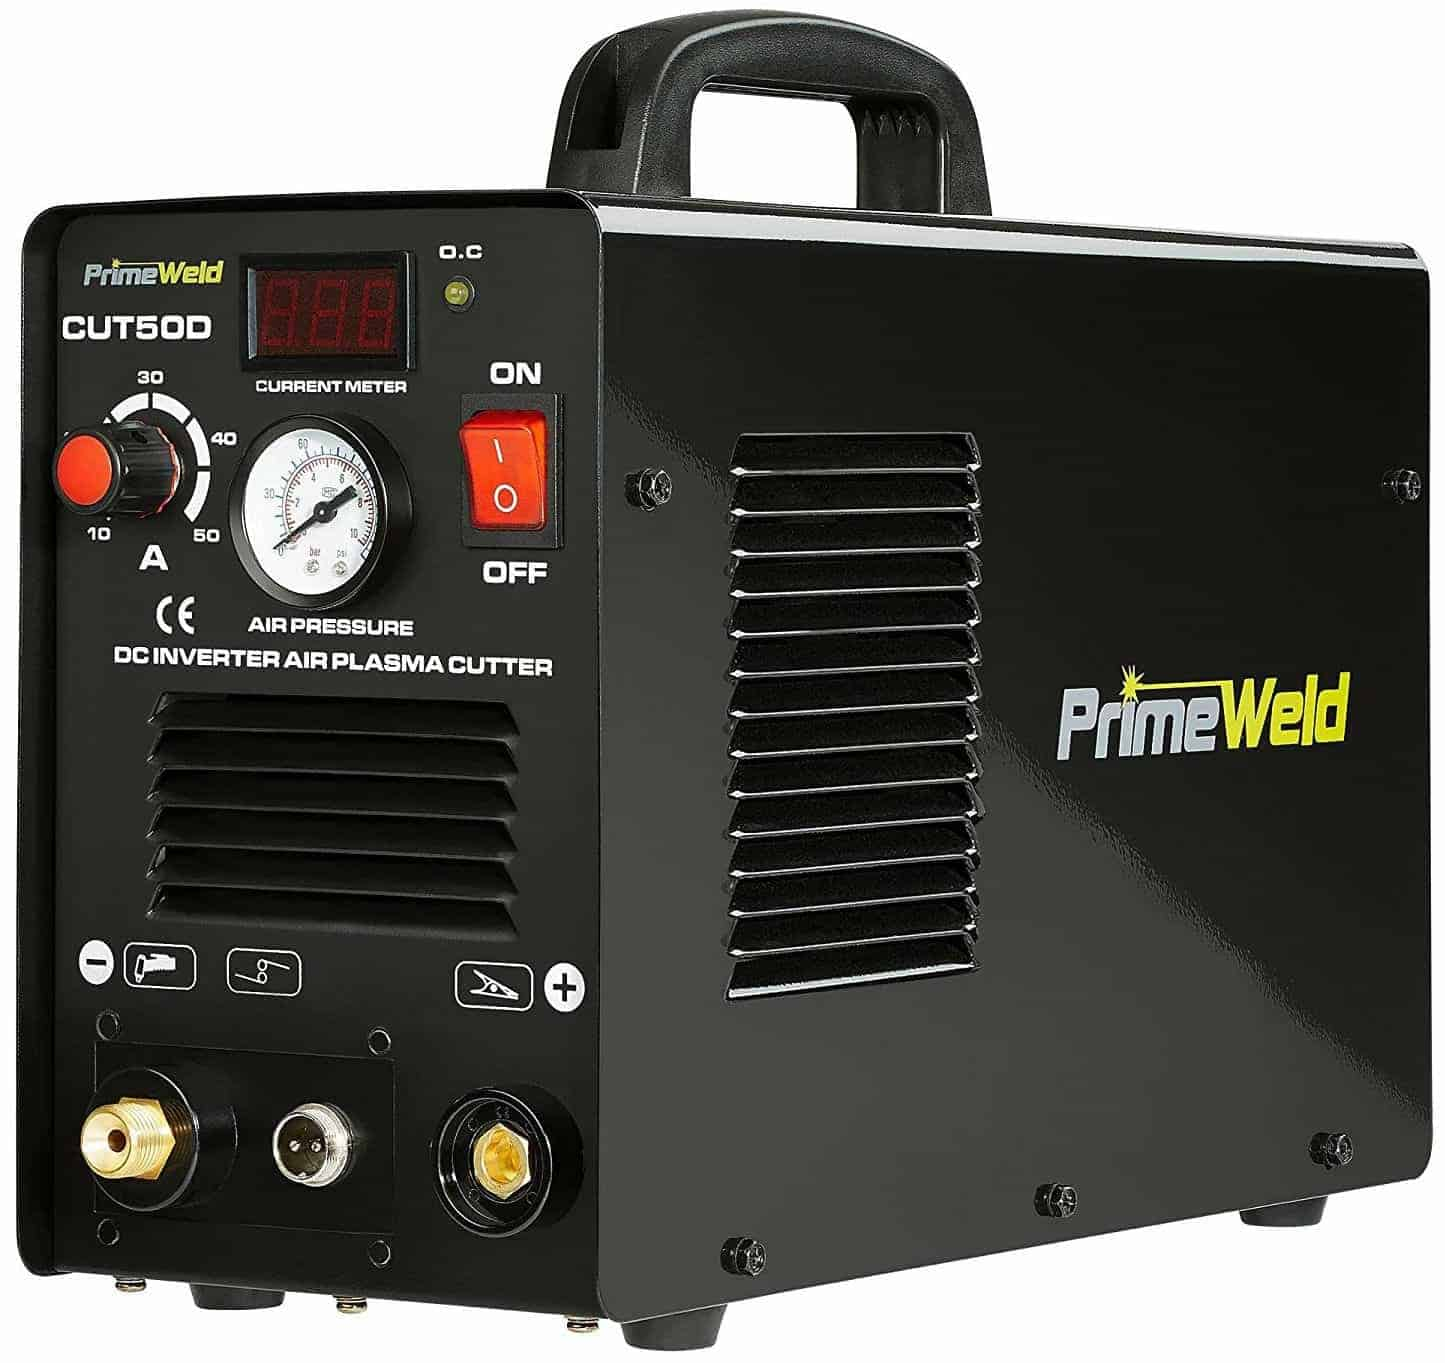 PRIMEWELD Premium & Rugged 50A Air Inverter Plasma Cutter